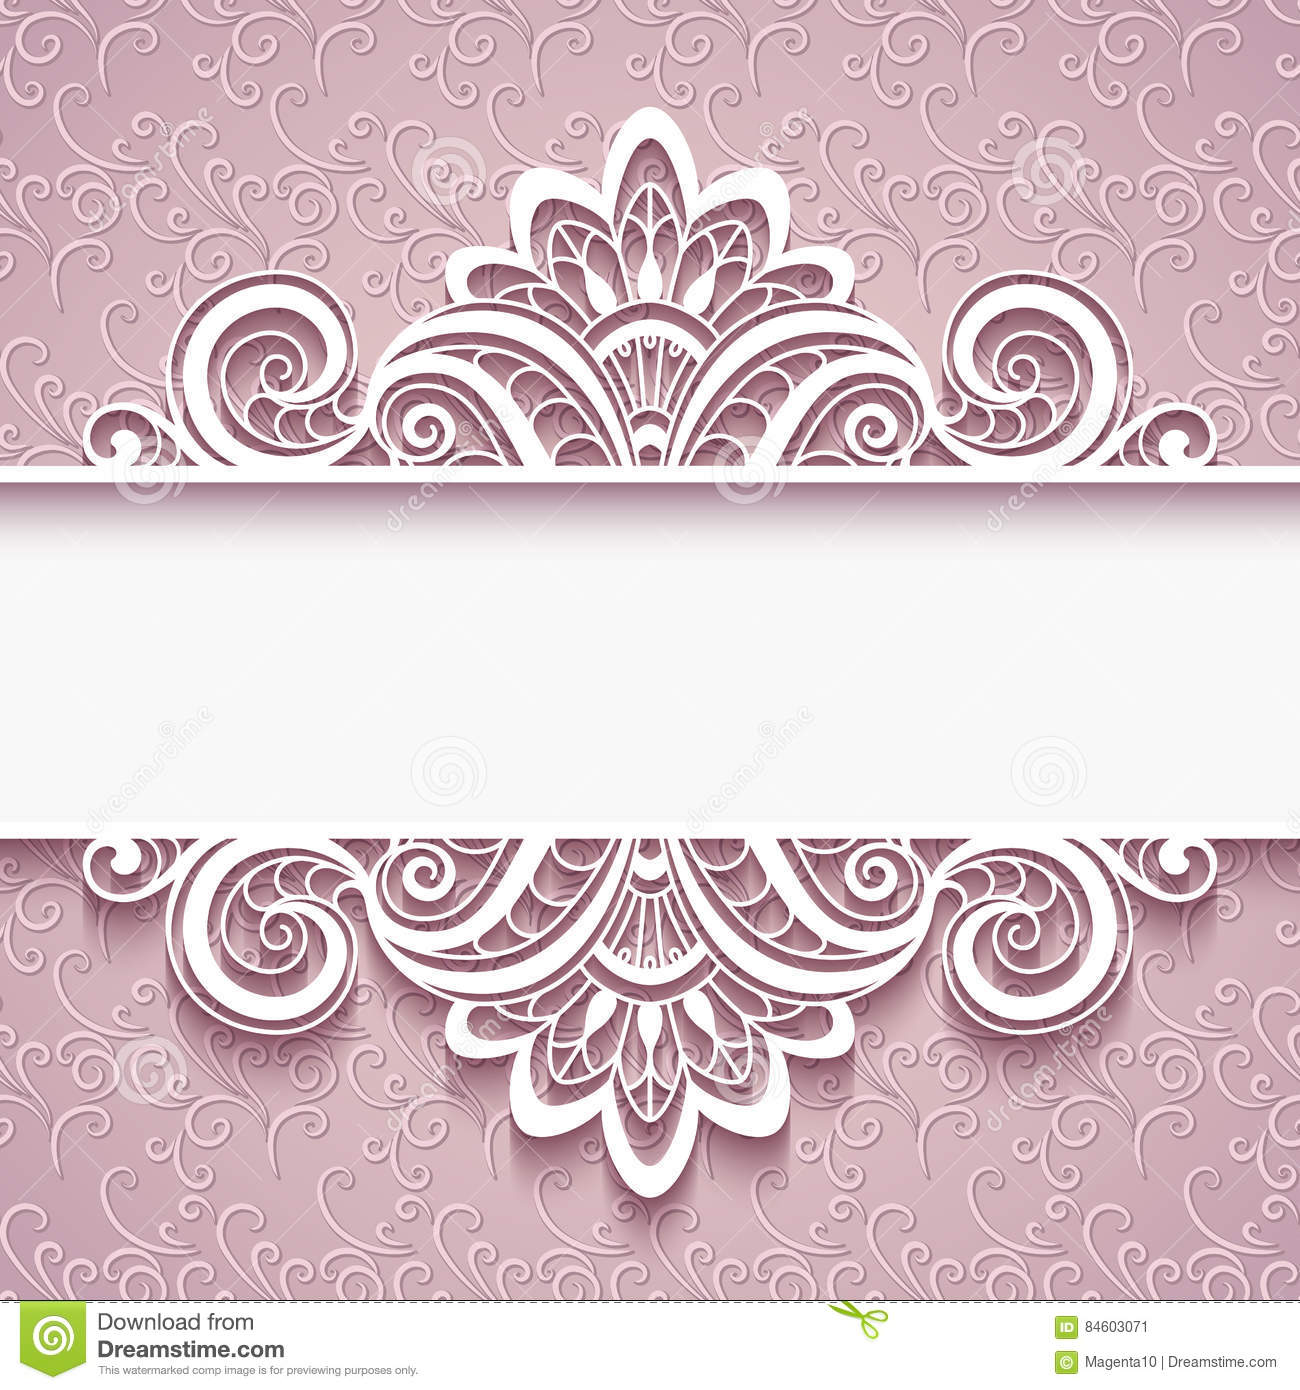 Wedding Boarder Paper: Cutout Paper Frame With Border Ornament Cartoon Vector